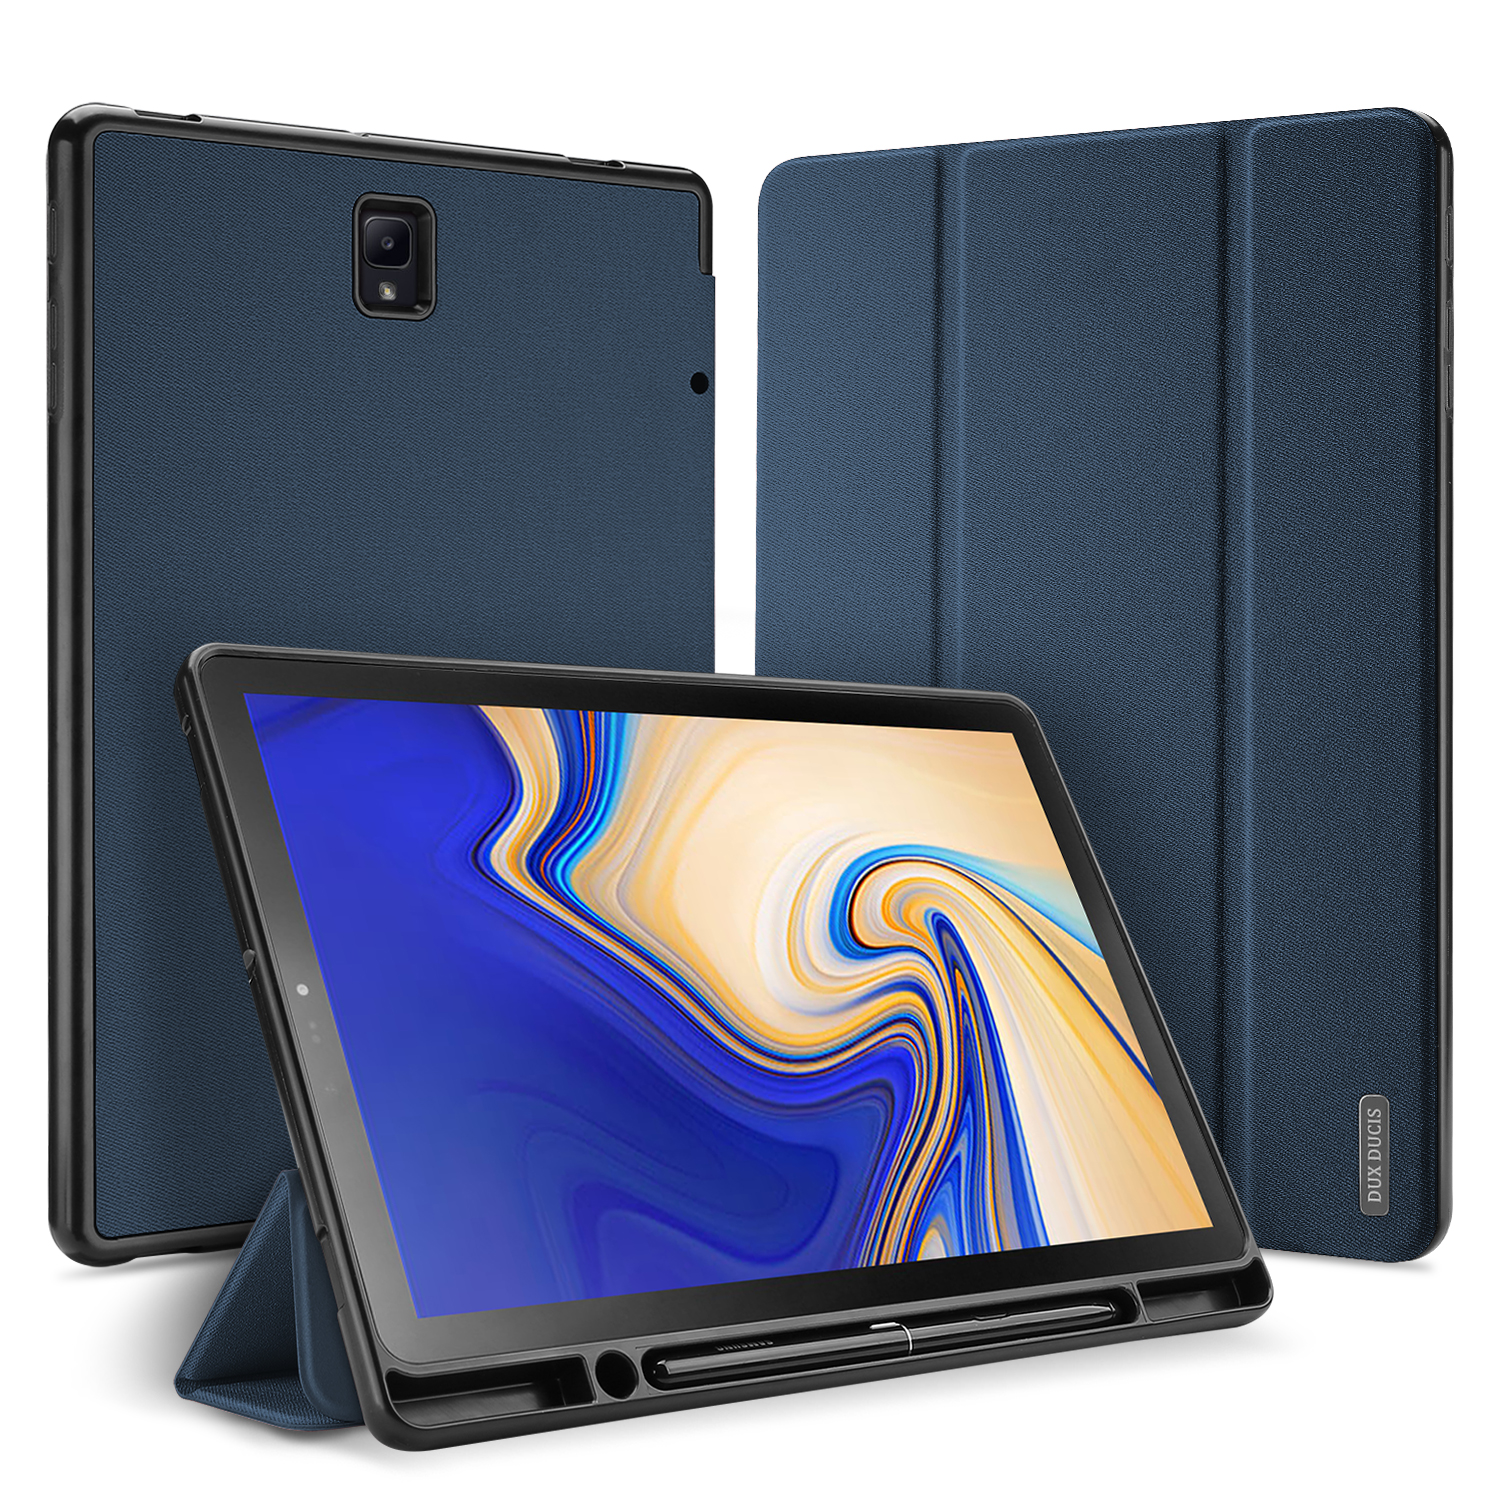 DUX DUCIS For Samsung TAB S4 10.5 Simple Solid Color Smart PU Leather Case Anti-fall Protective Stand Cover with Pencil Holder Sleep Function  blue_Samsung TAB S4 10.5